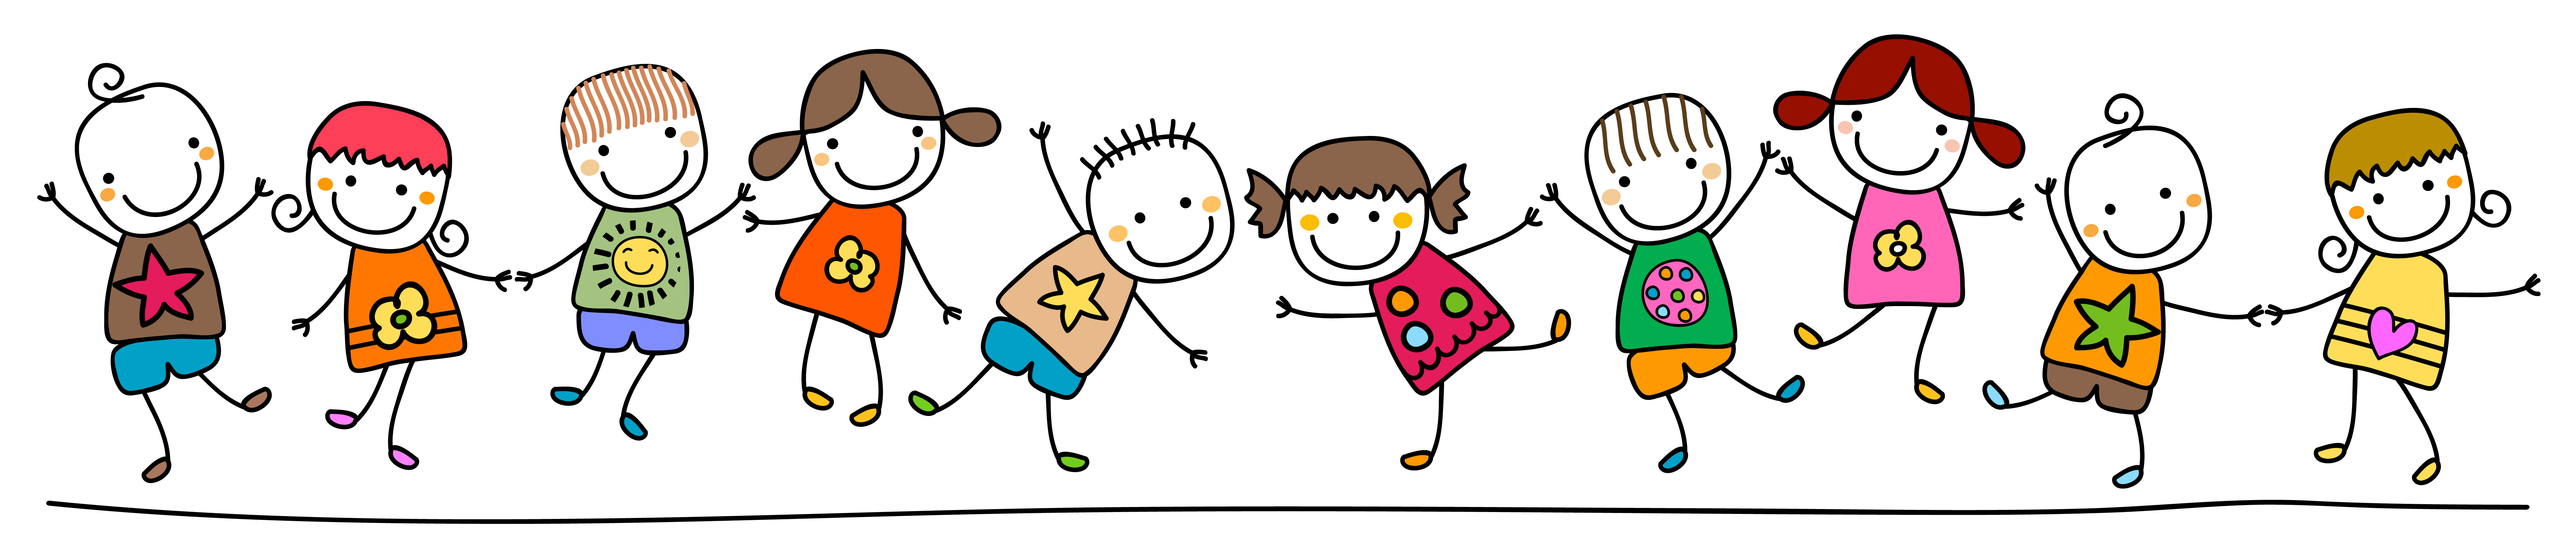 Drawing clipart healthy child. Kids playing at getdrawings